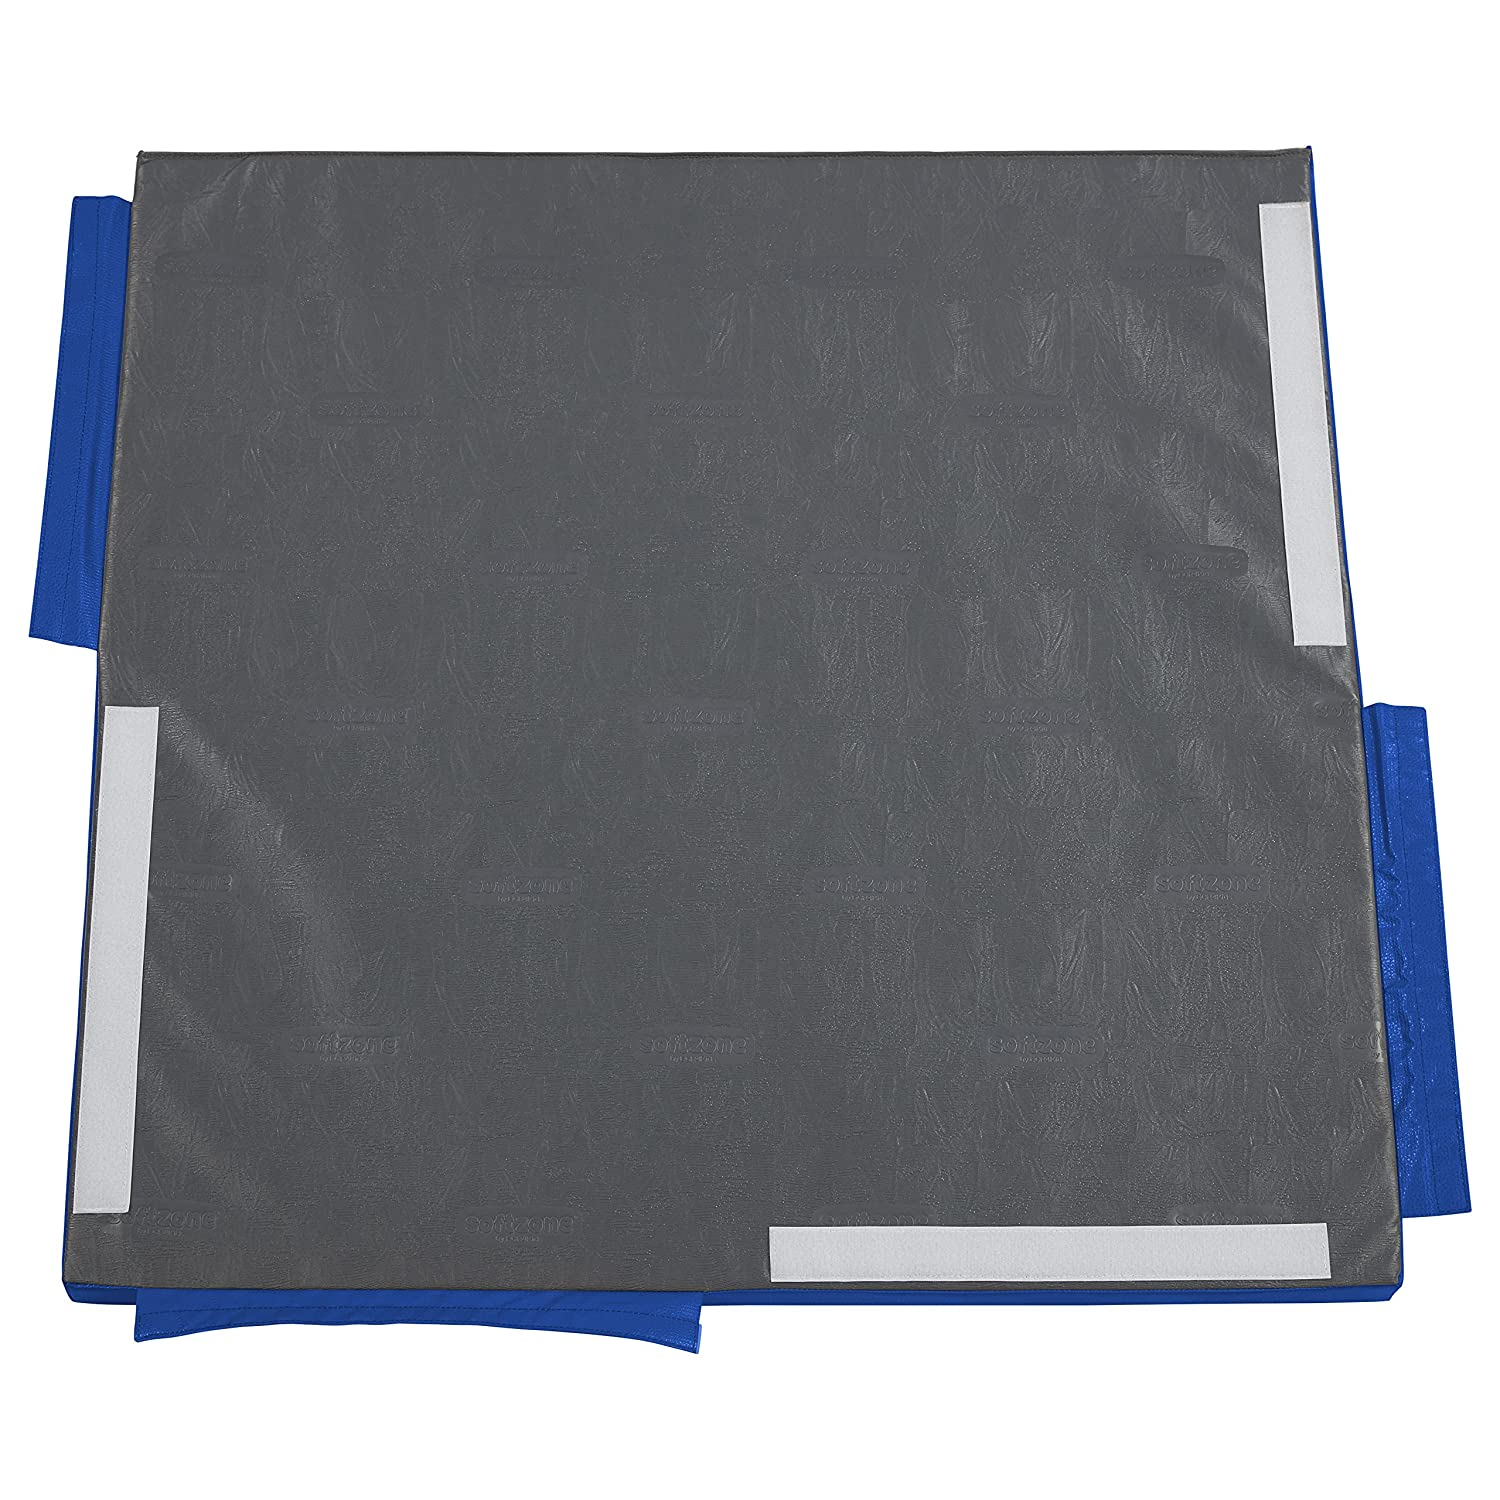 2.5 Height RetailSource STC147x100 8 x 8 Open End Static Shielding Bags Pack of 100 RetailSource Ltd 9.5 Width 2.5 Height 14.75 Length 9.5 Width 14.75 Length Pack of 100